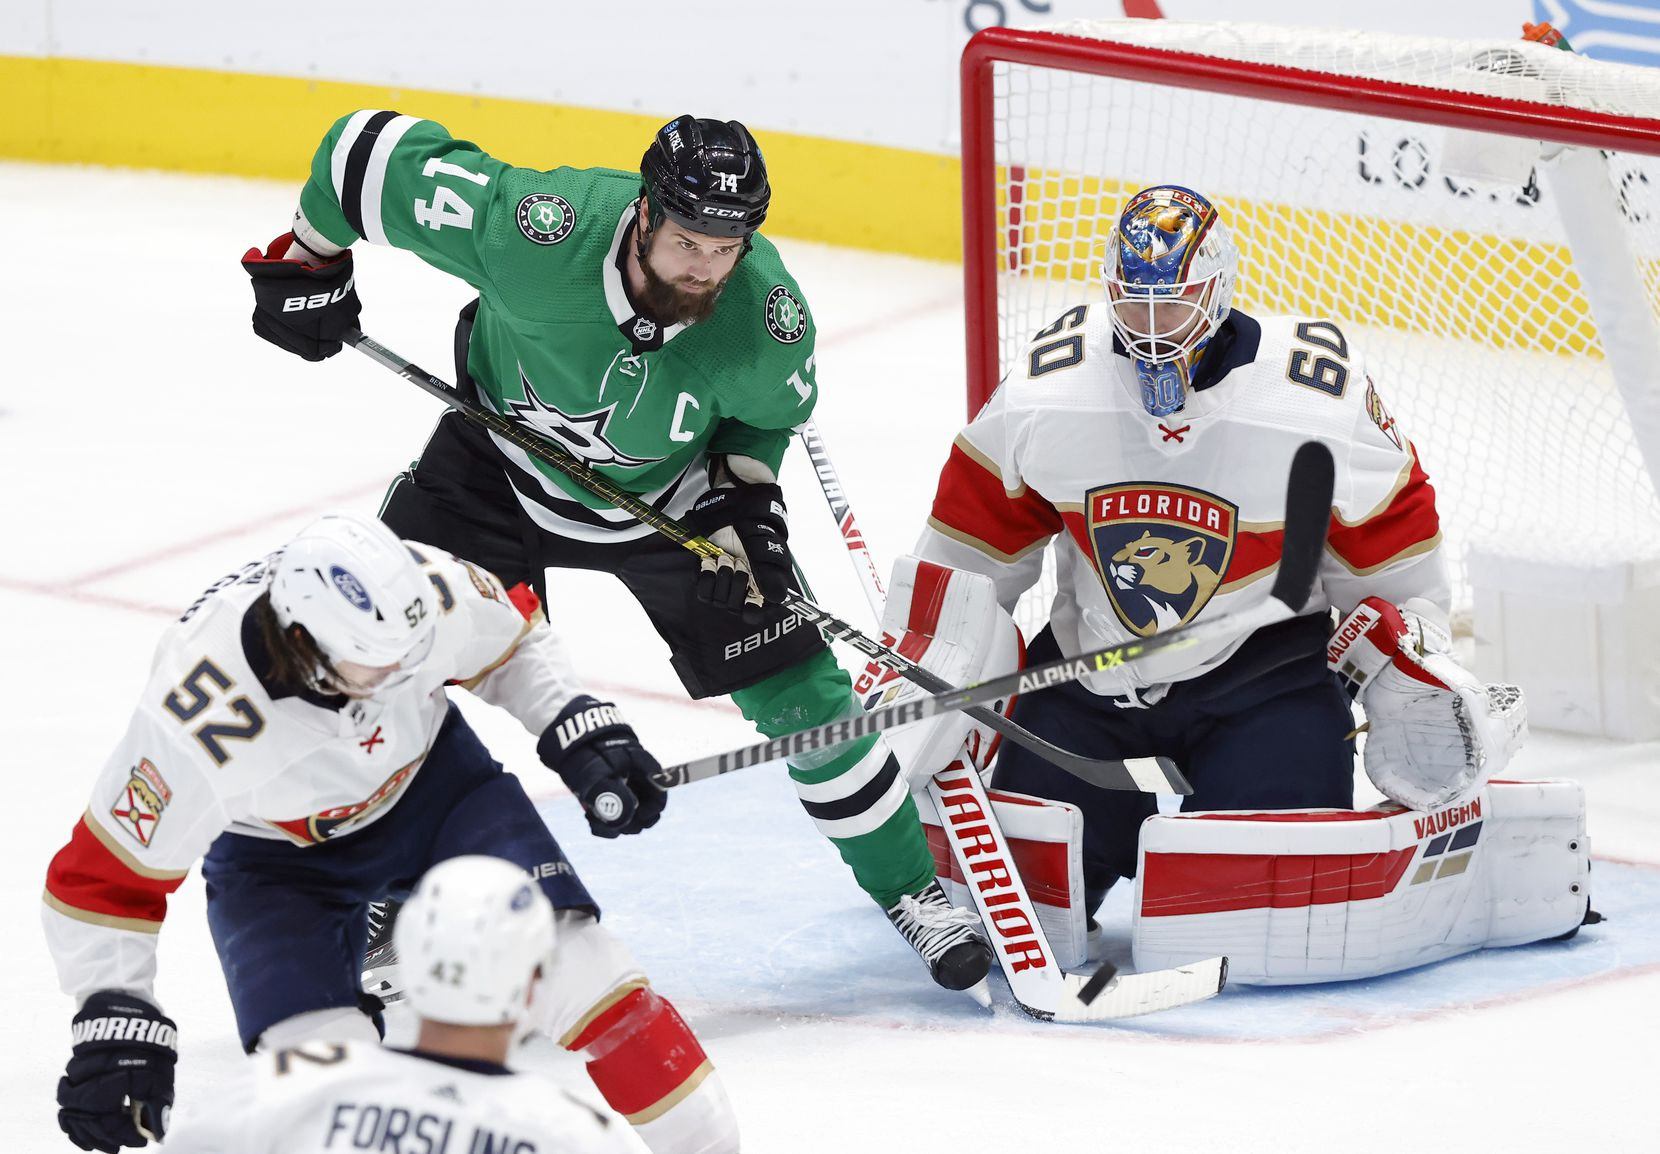 Dallas Stars left wing Jamie Benn (14) is in position to deflect the puck on Florida Panthers goaltender Chris Driedger (60) put can't get a stick on it during the third period at the American Airlines Center in Dallas, Tuesday, April 13, 2021. (Tom Fox/The Dallas Morning News)